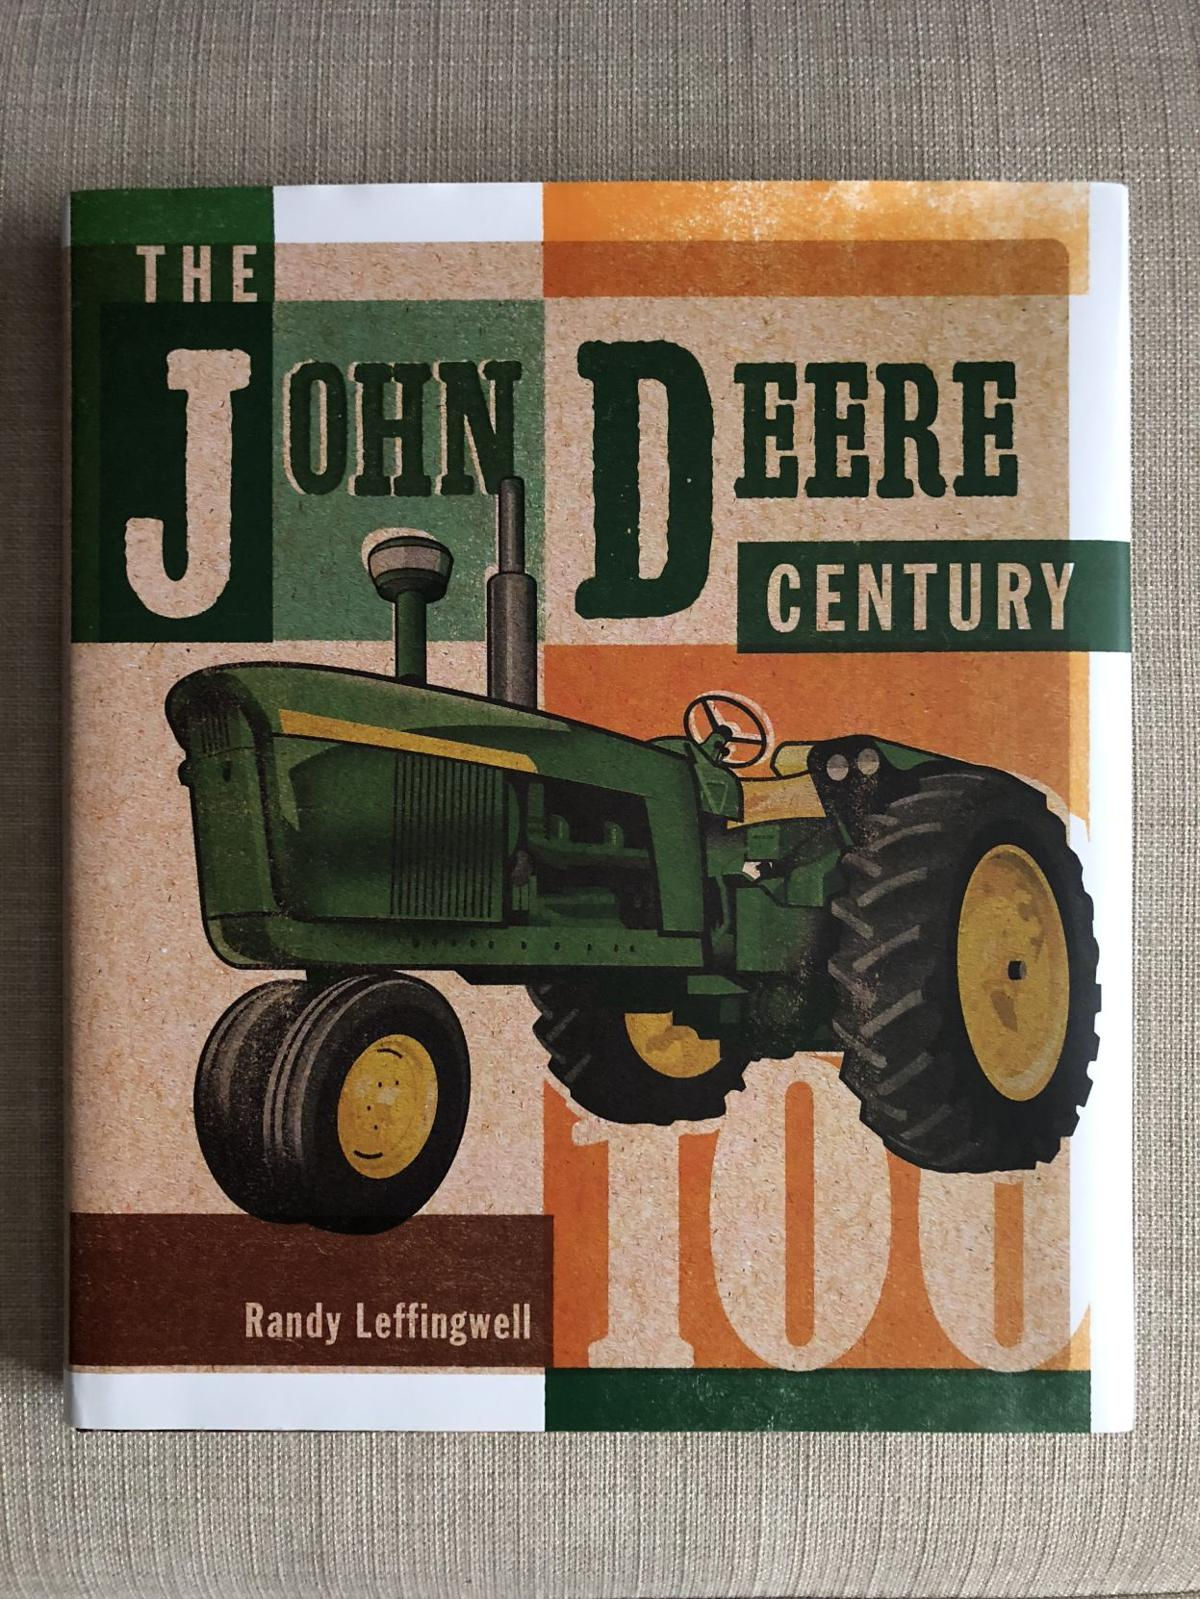 100 years of Deere tractors makes for a great story